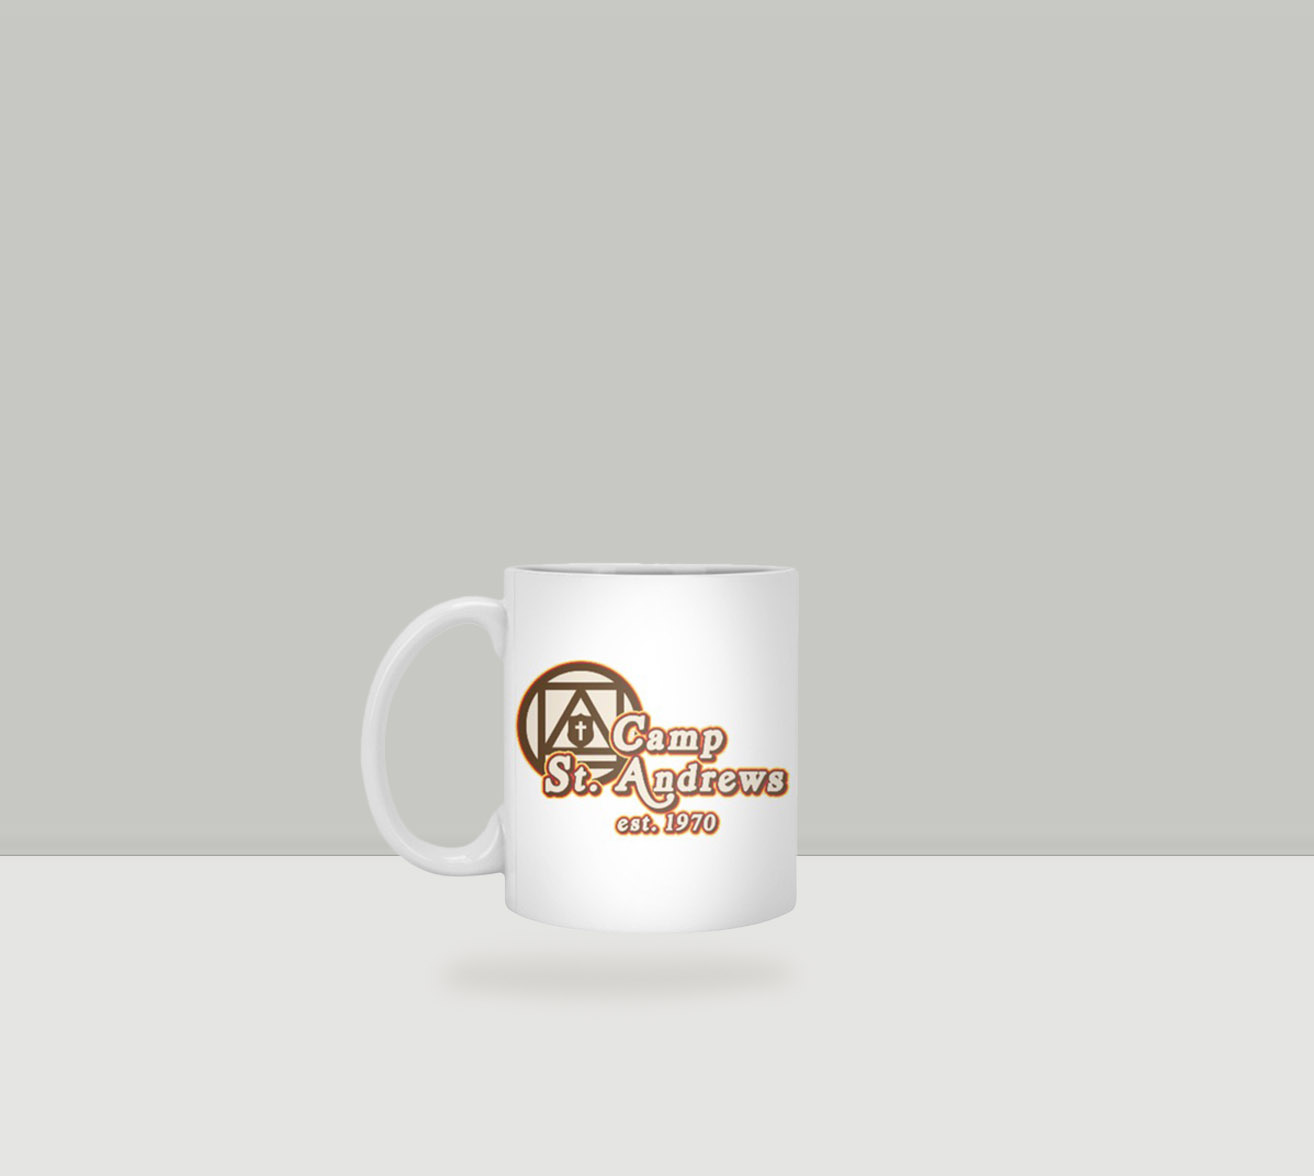 Camp St. Andrews 2020 70s Style Coffee Mug